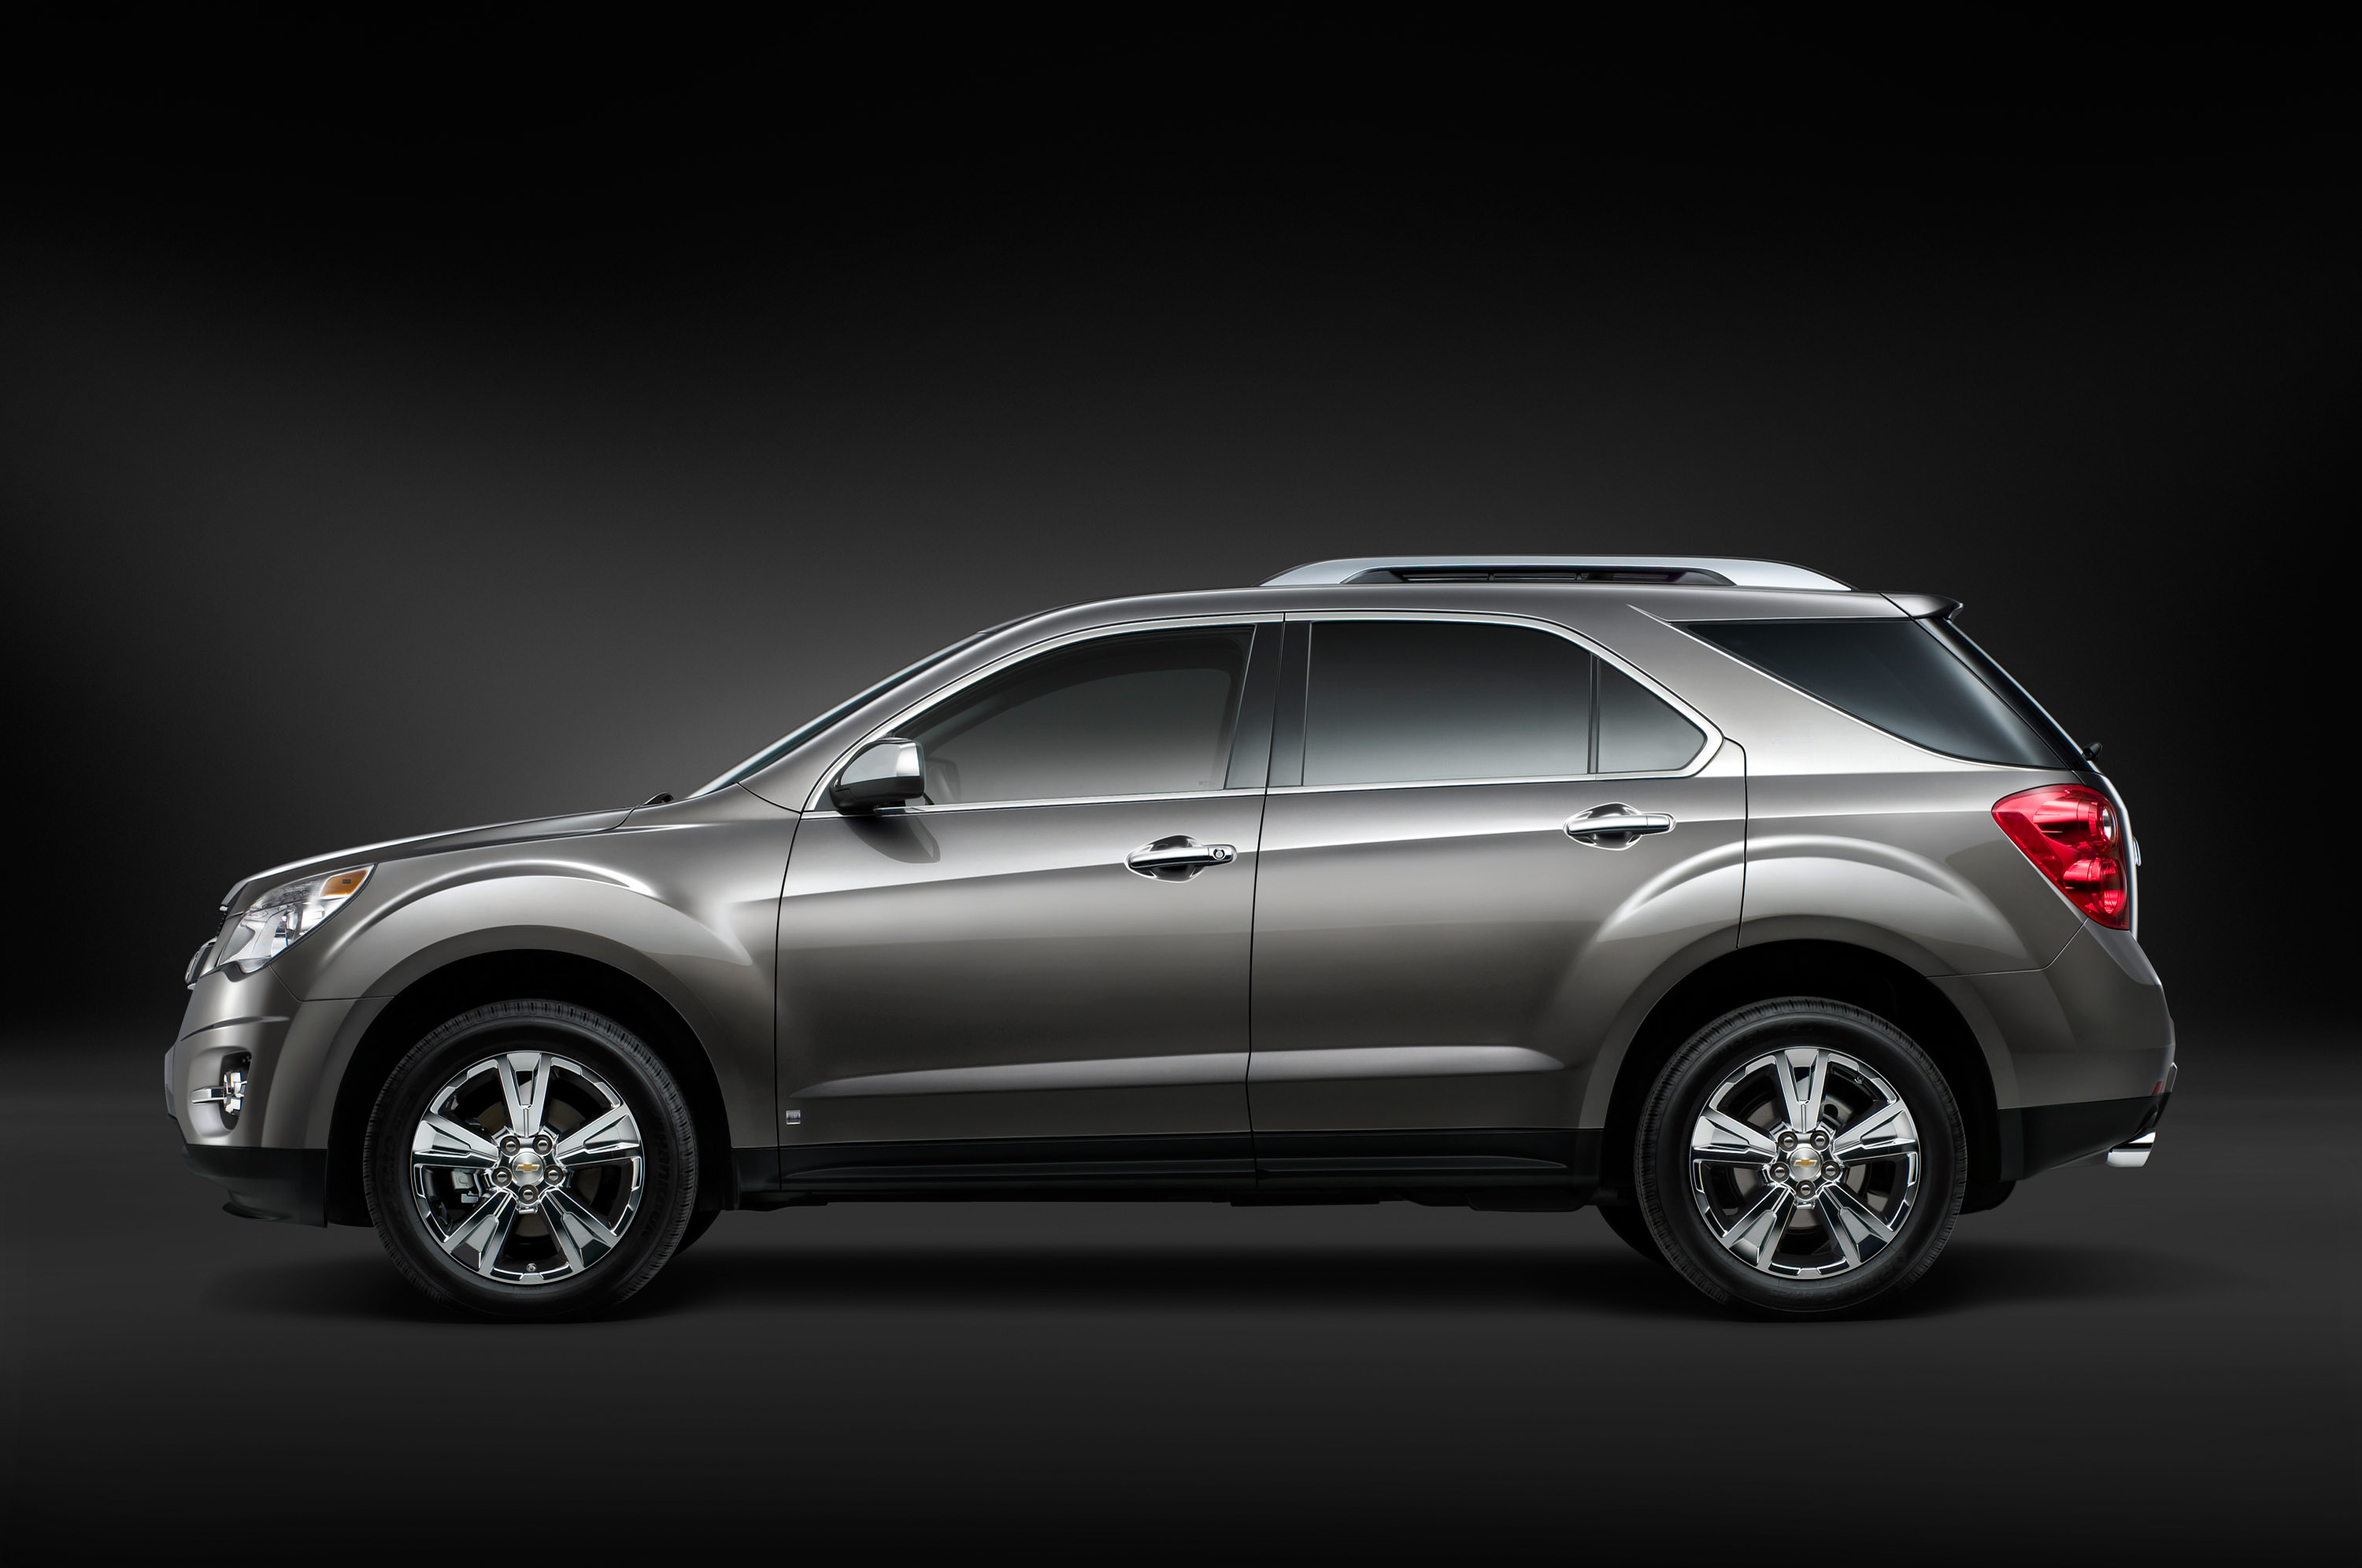 2010 chevrolet equinox pricing. Black Bedroom Furniture Sets. Home Design Ideas